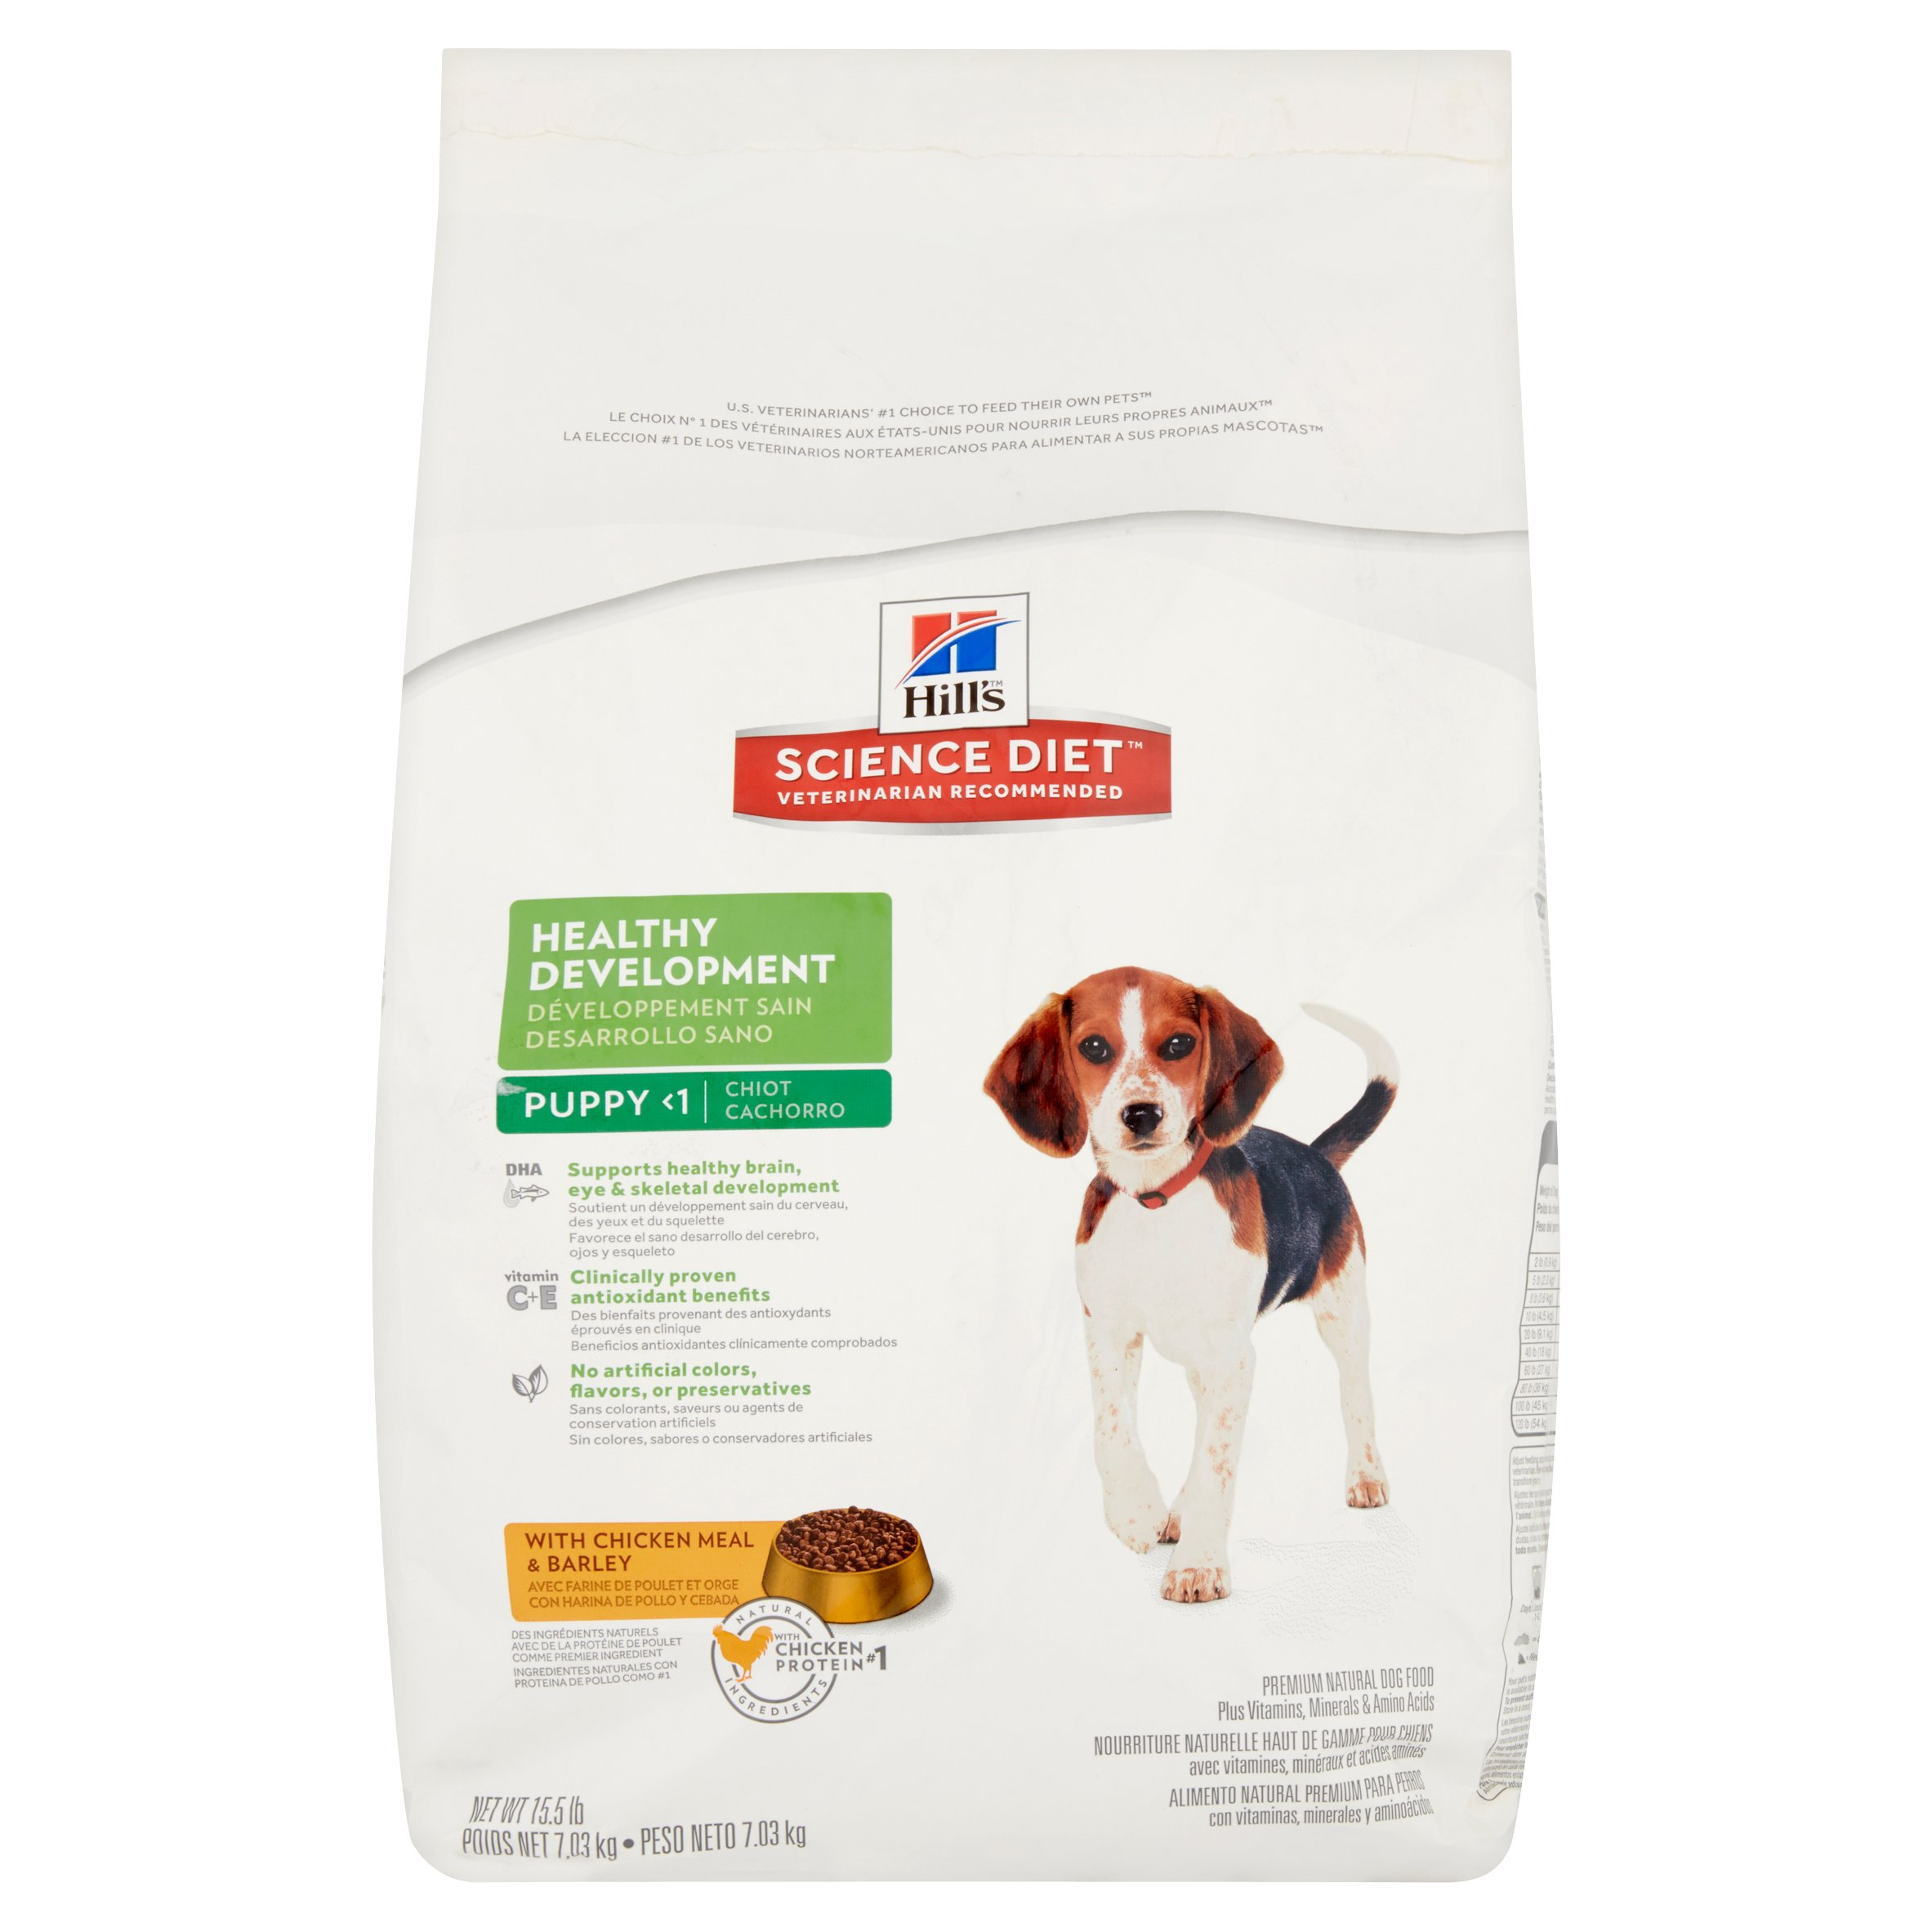 Hill's Science Diet Puppy Healthy Development with Chicken Meal & Barley Dry Dog Food, 15.5 lb bag